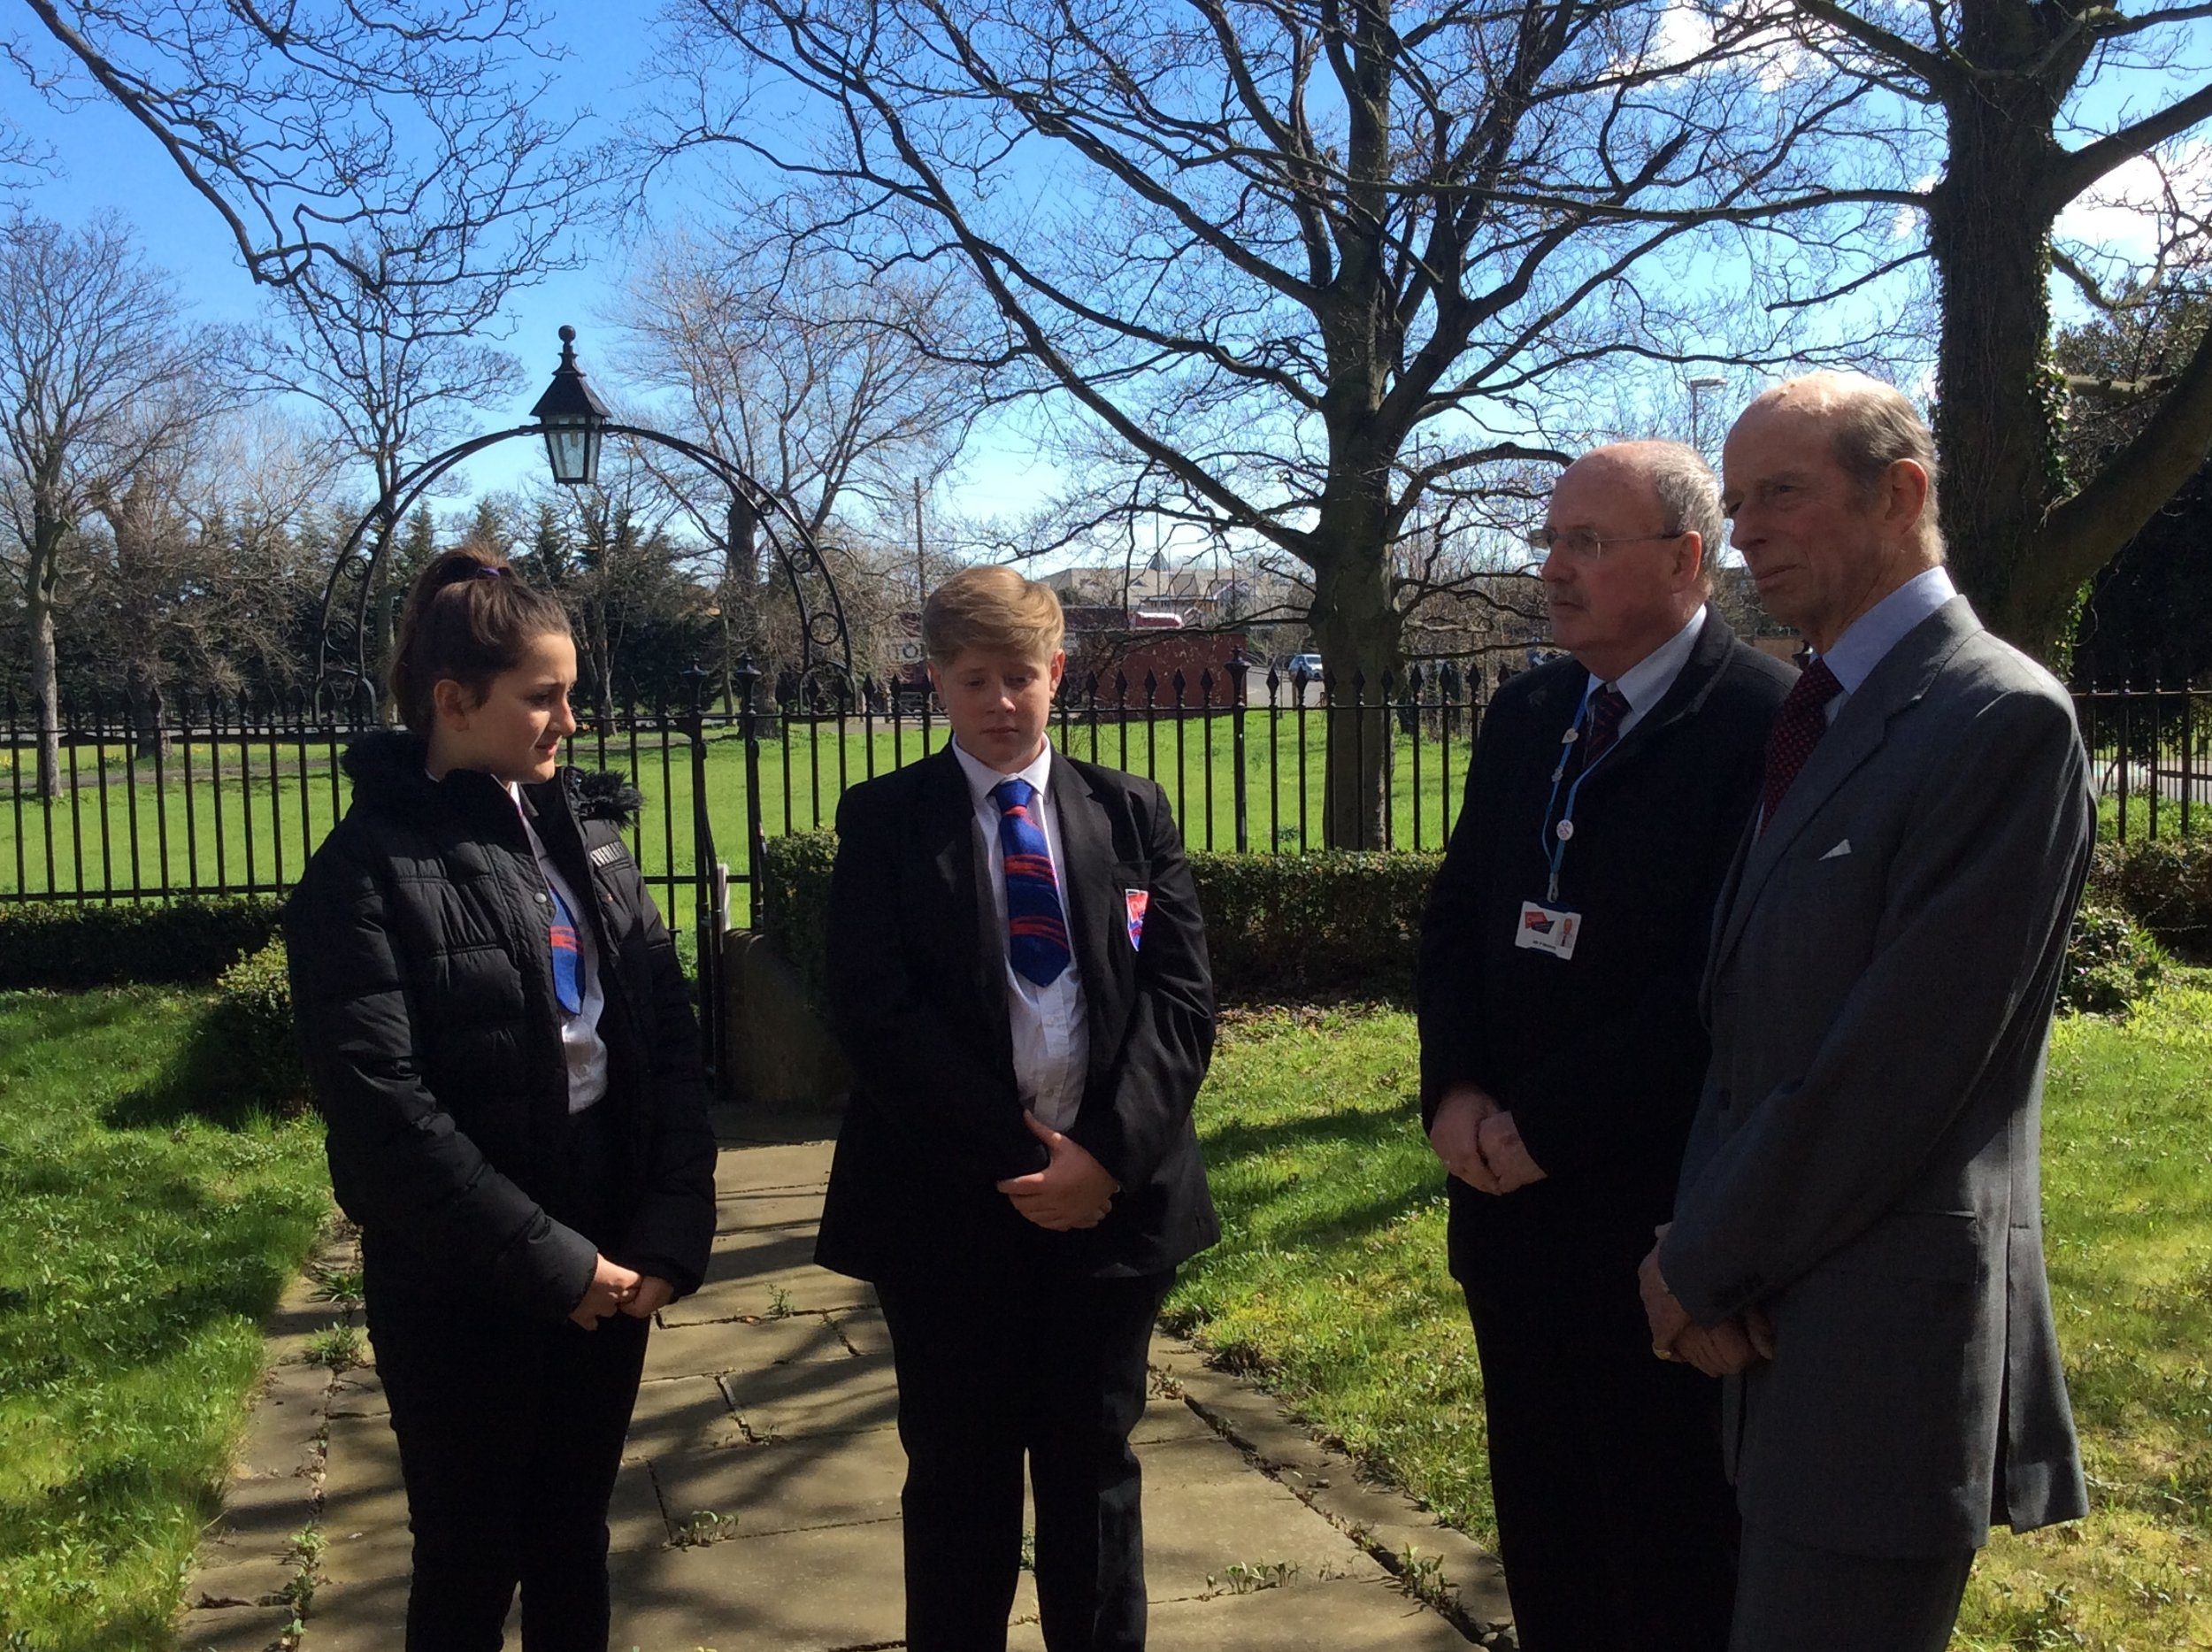 The Duke took some time to speak with students and teacher Paul Murray from  Oasis Academy   who have been involved with some reminiscence work for the project.